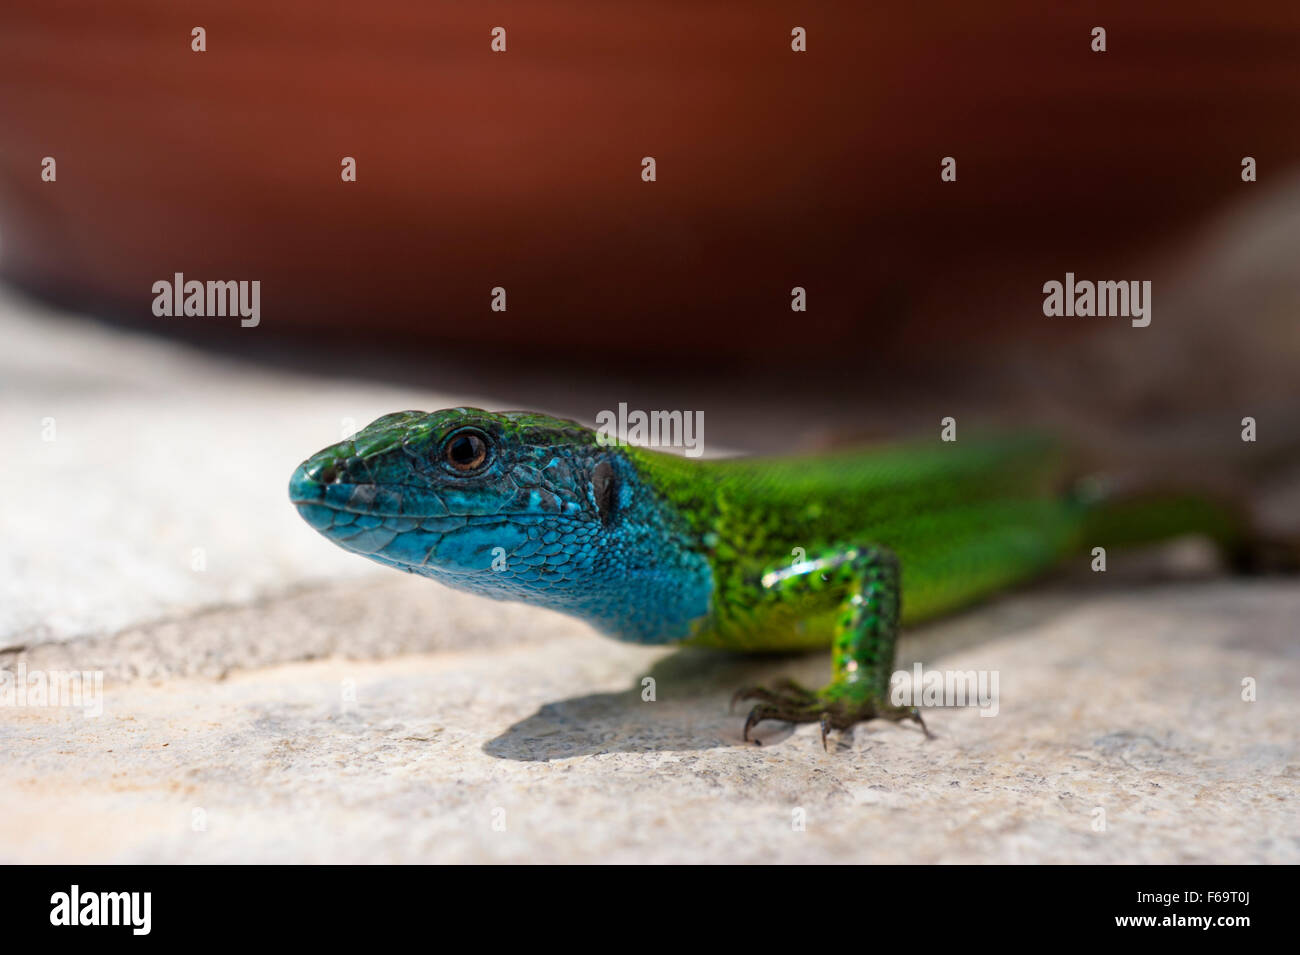 European Green Lizard  (Lacerta viridis) on stone wall - Stock Image